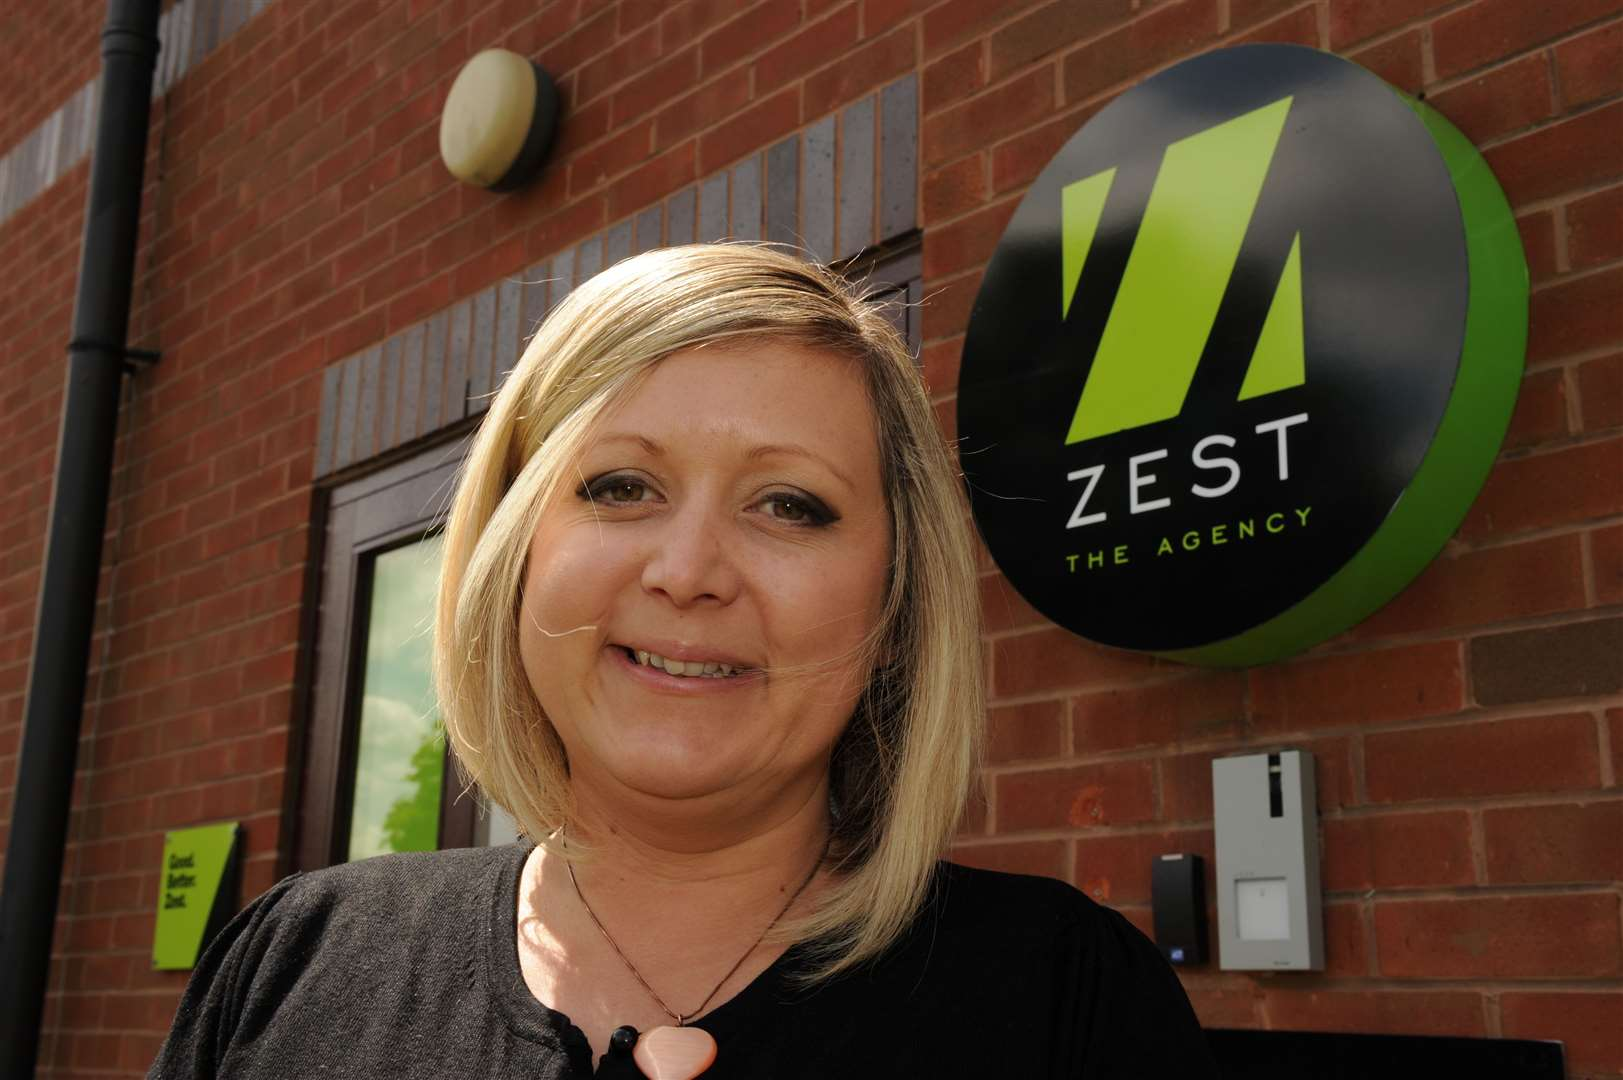 Belinda Collins left Zest earlier this summer